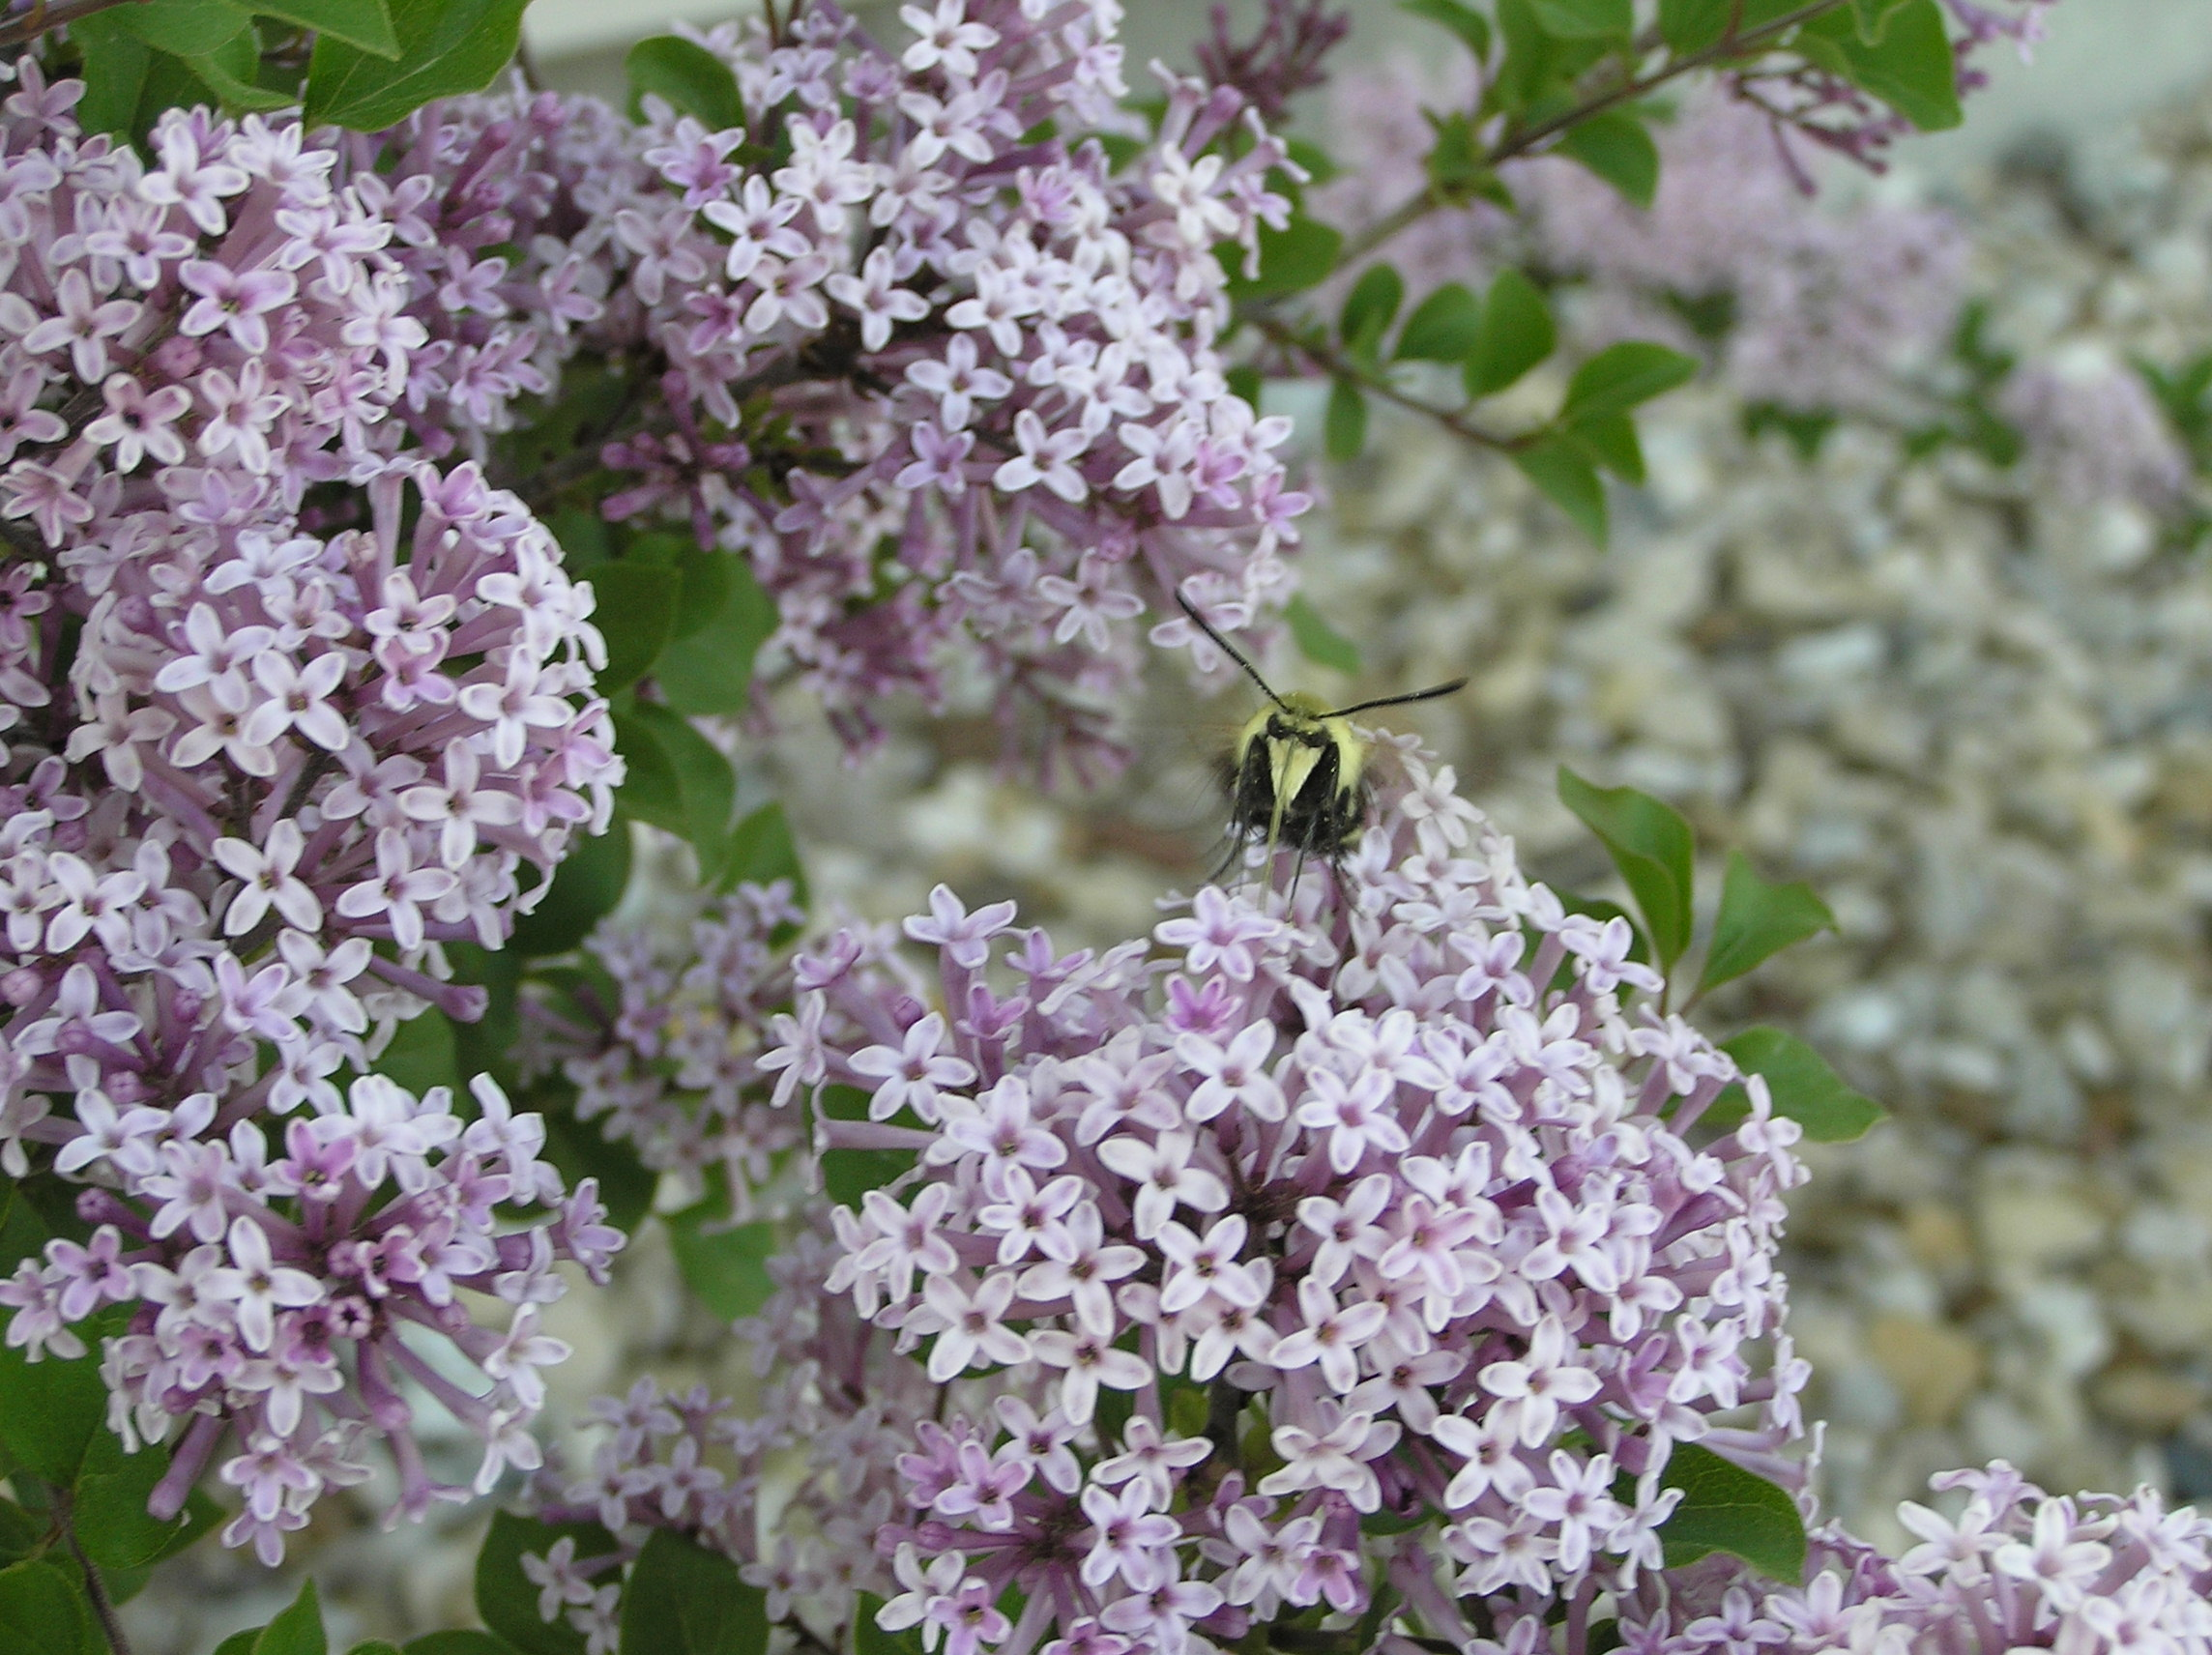 Lilacs and the bee